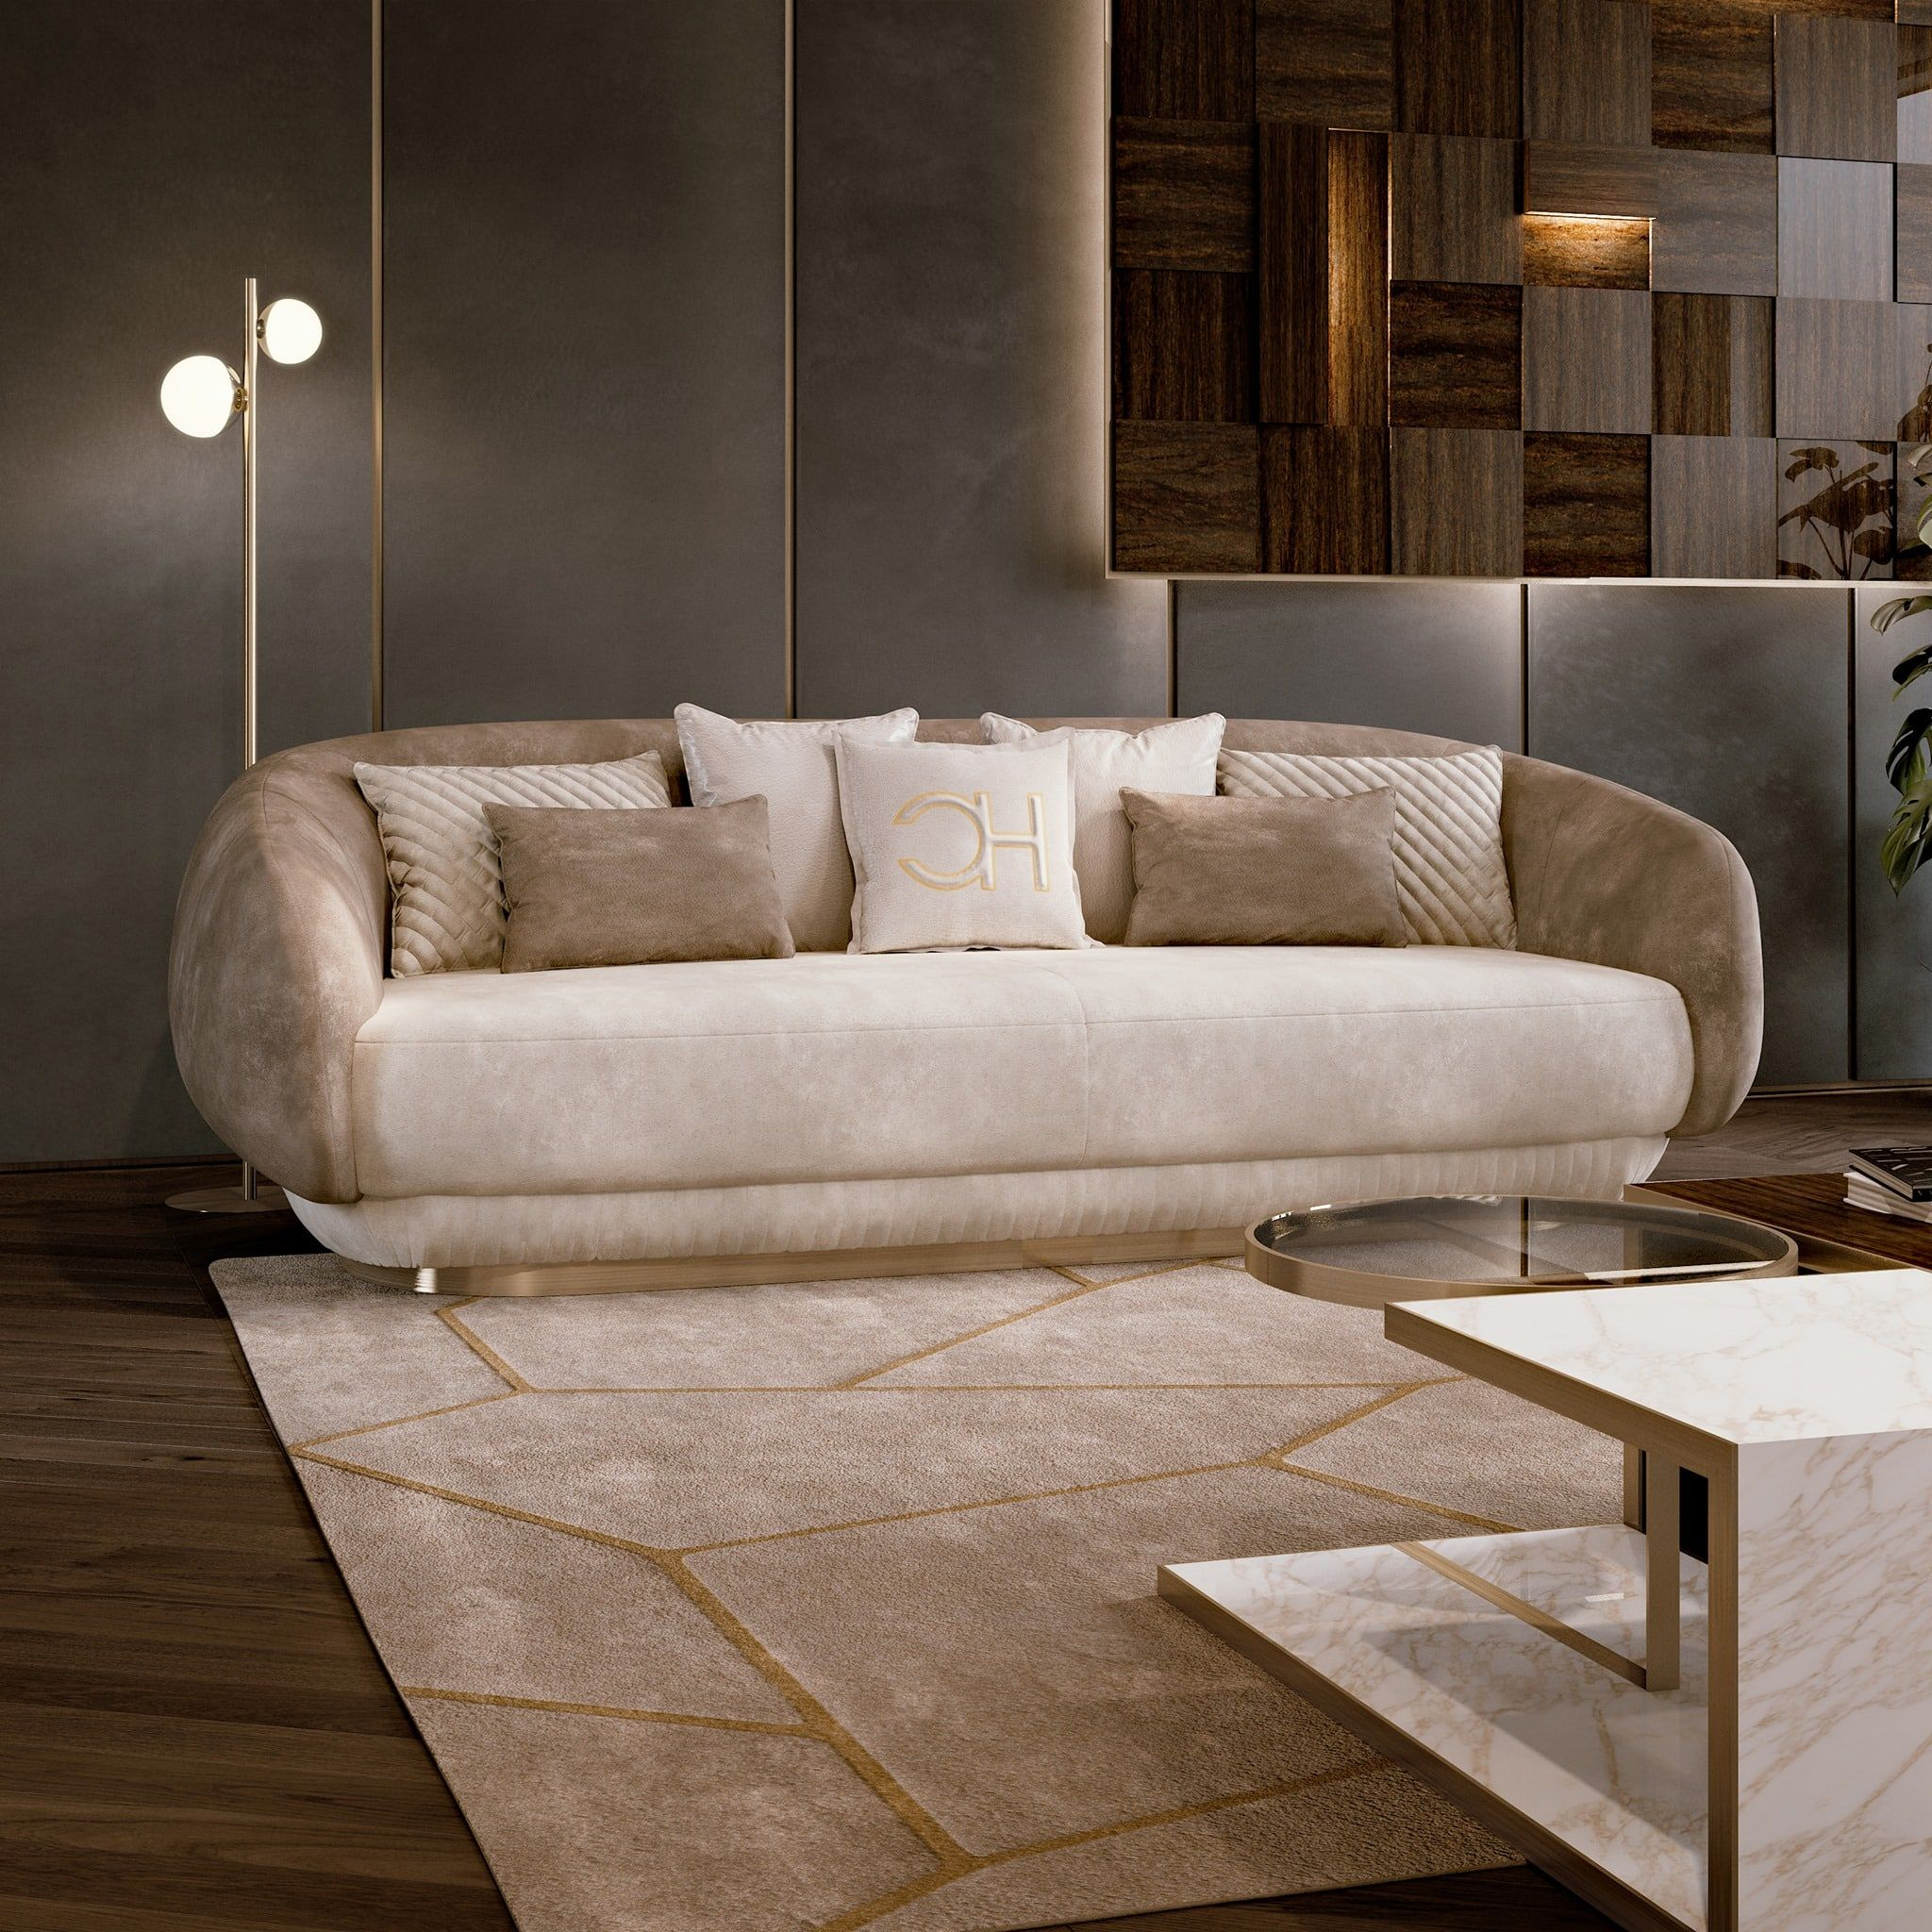 Carpanese Home Italia Our Moon Sofa Hugs You With Its So Contemporary Designers Furniture Da Vinci Lifestyle In 2020 Luxury Furniture Sofa Luxury Sofa Fabric Sofa Design